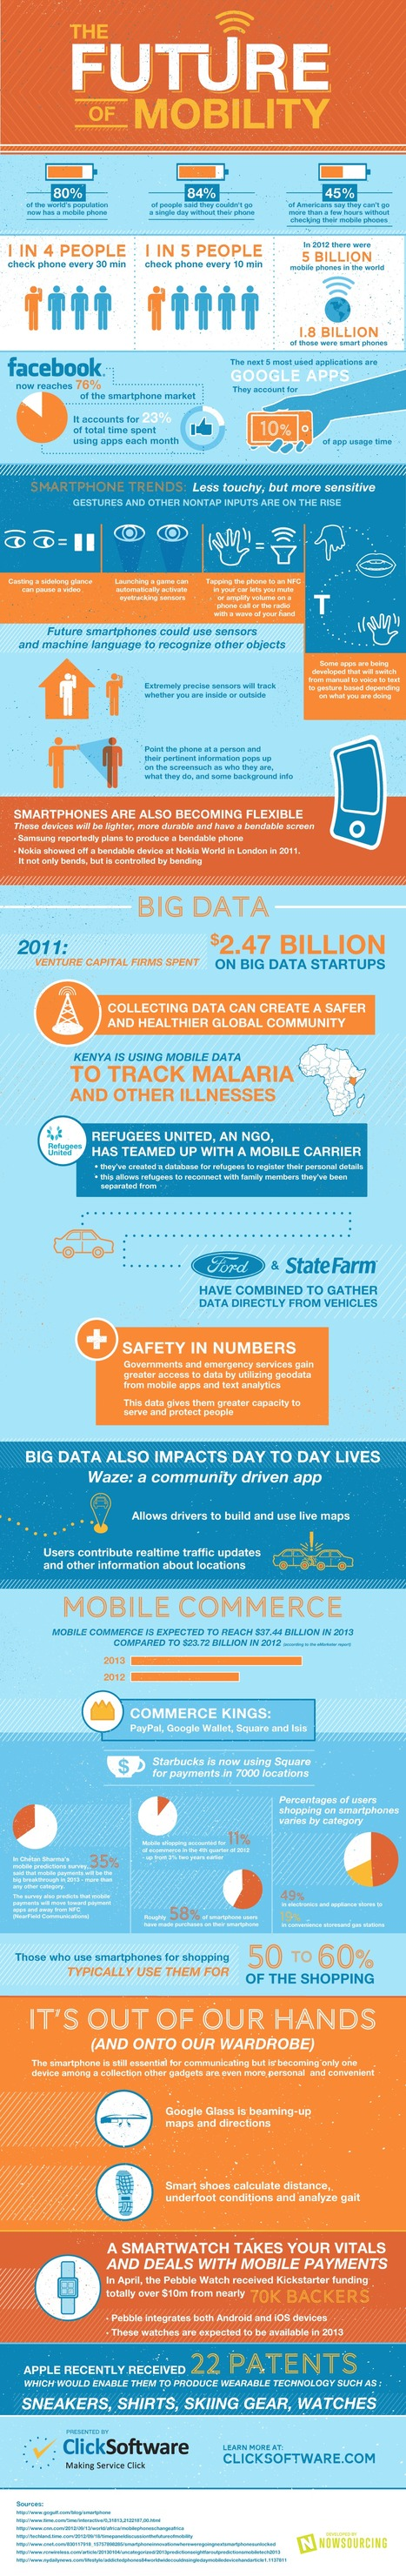 The Future of Mobility [Infographic] | Digital Marketing B2C | Scoop.it